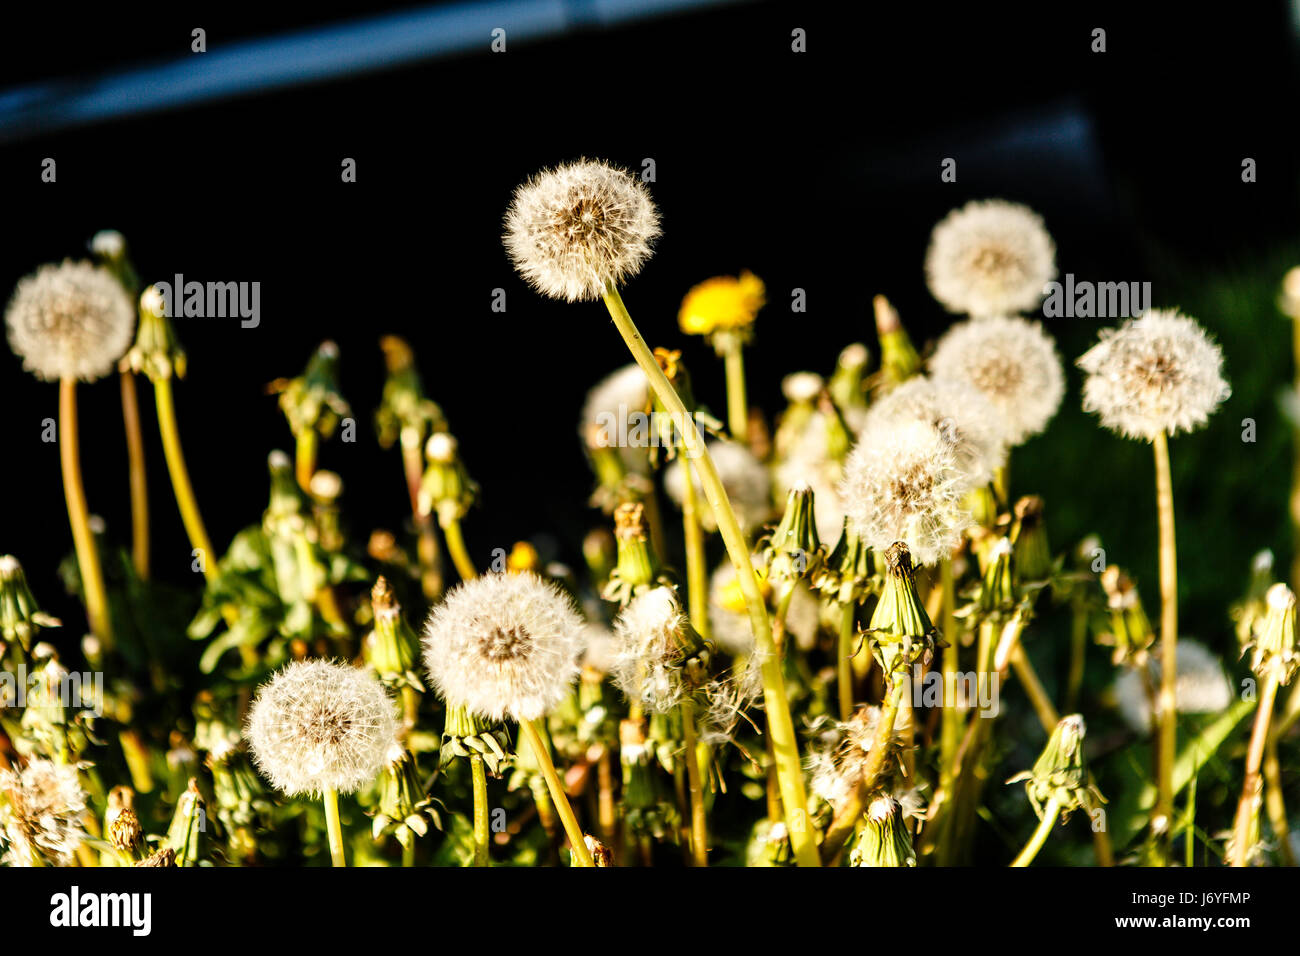 Field of dandelions, nothern Germany - Stock Image